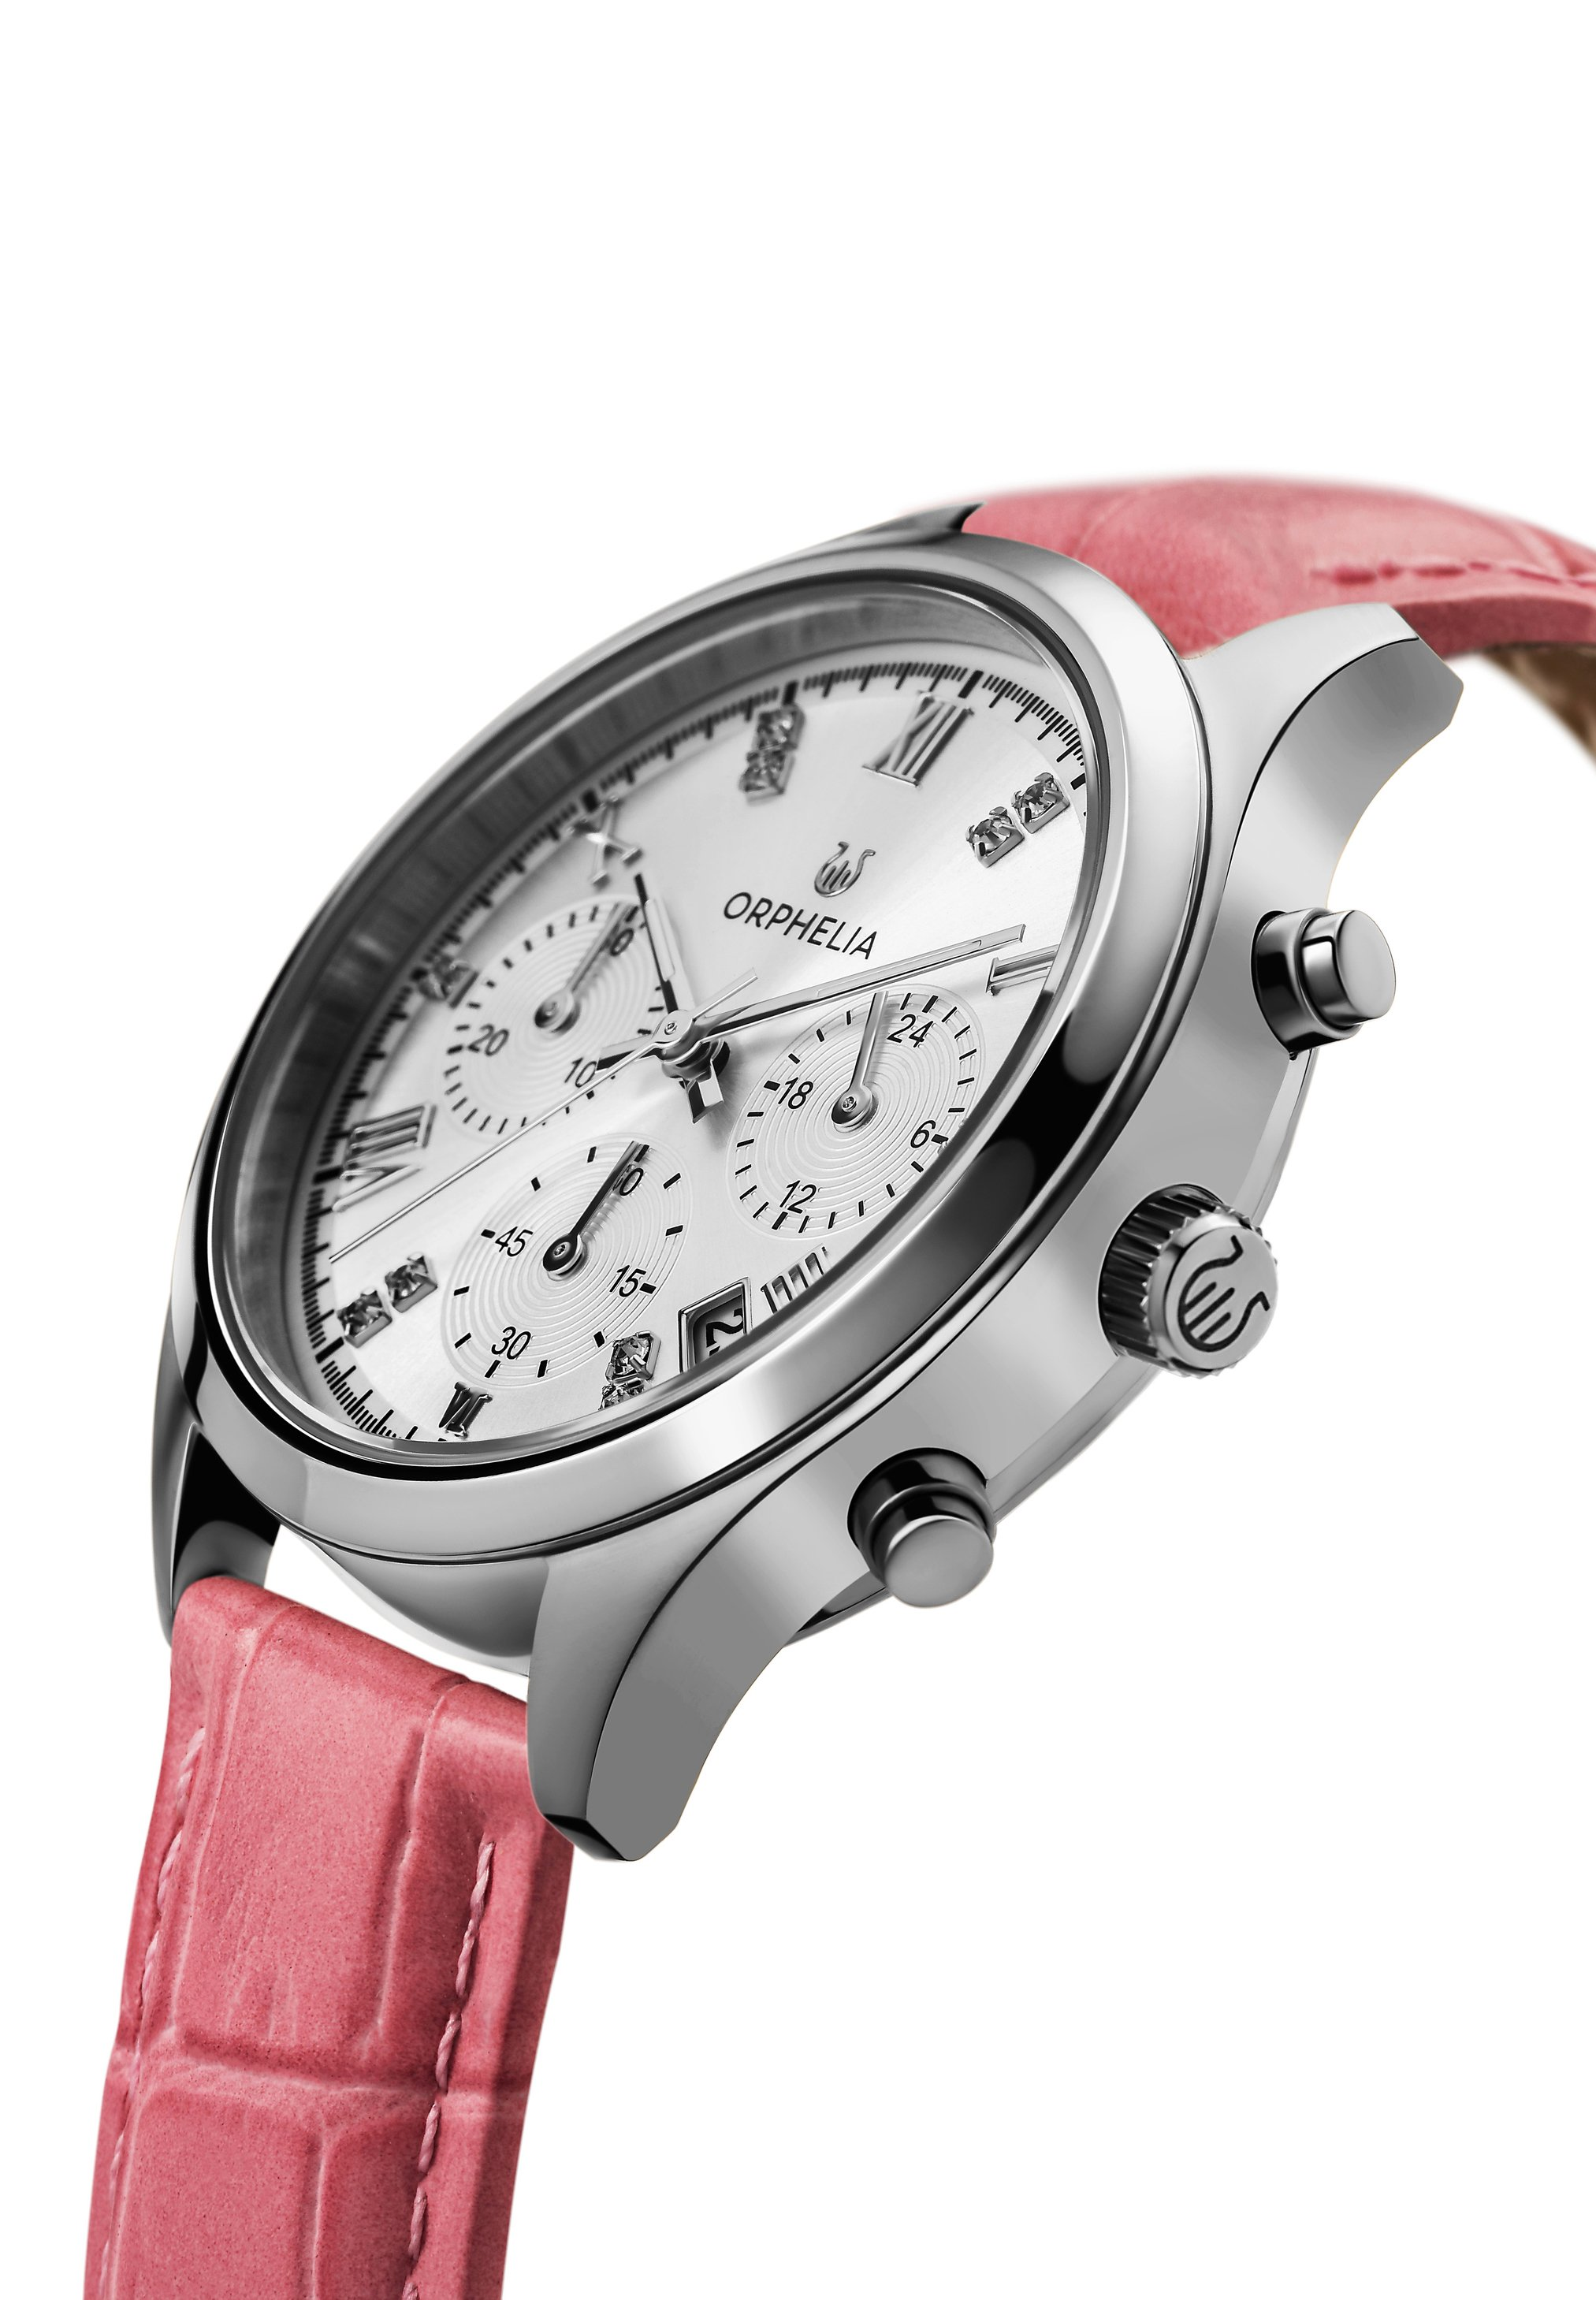 Orphelia Regal - Chronograph Watch Pink